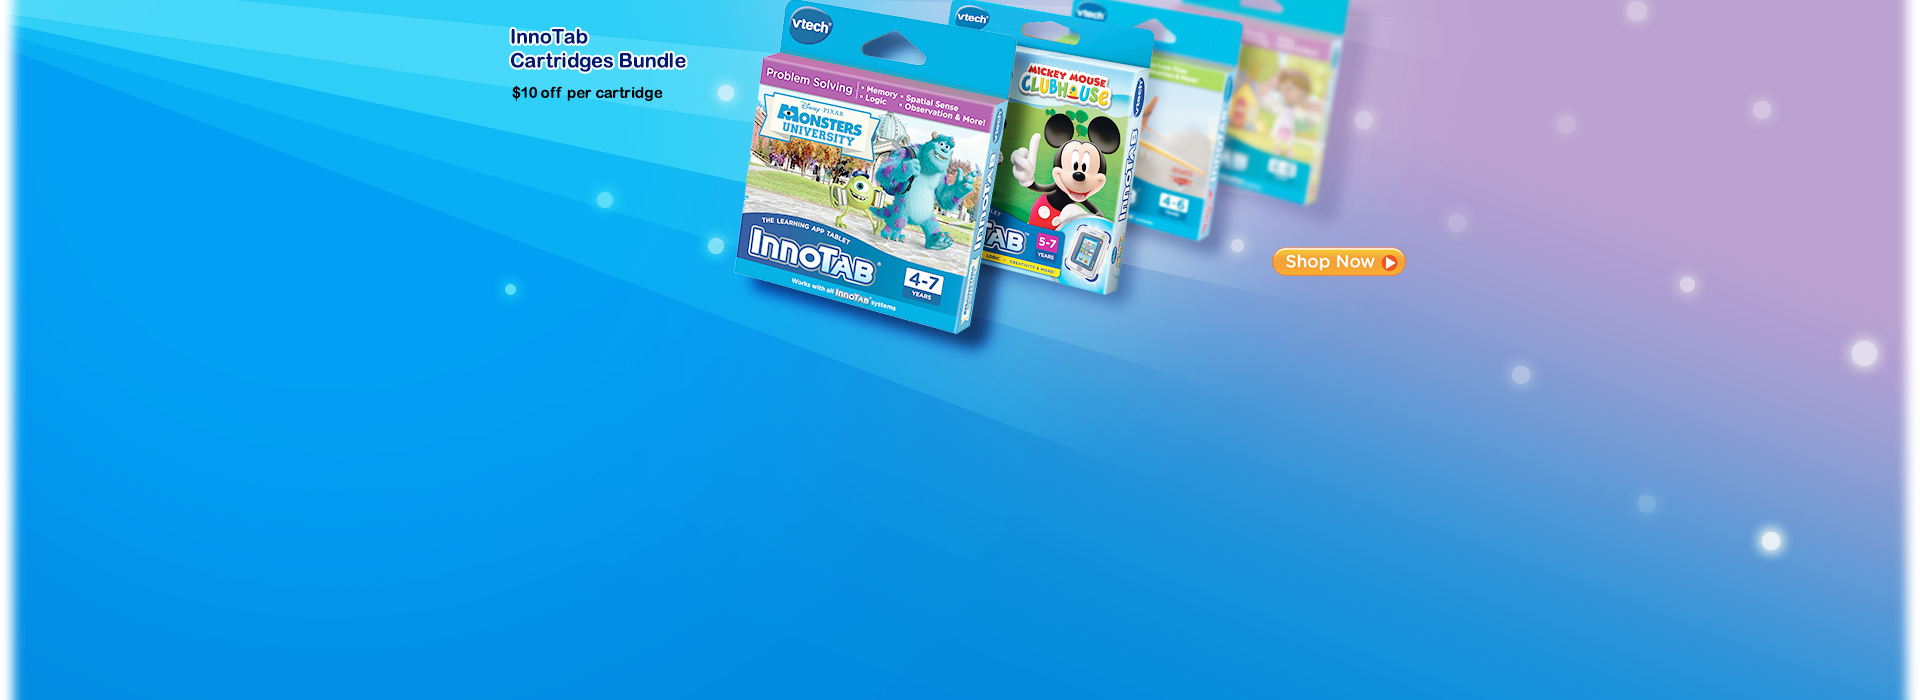 InnoTab Cartridges Bundle